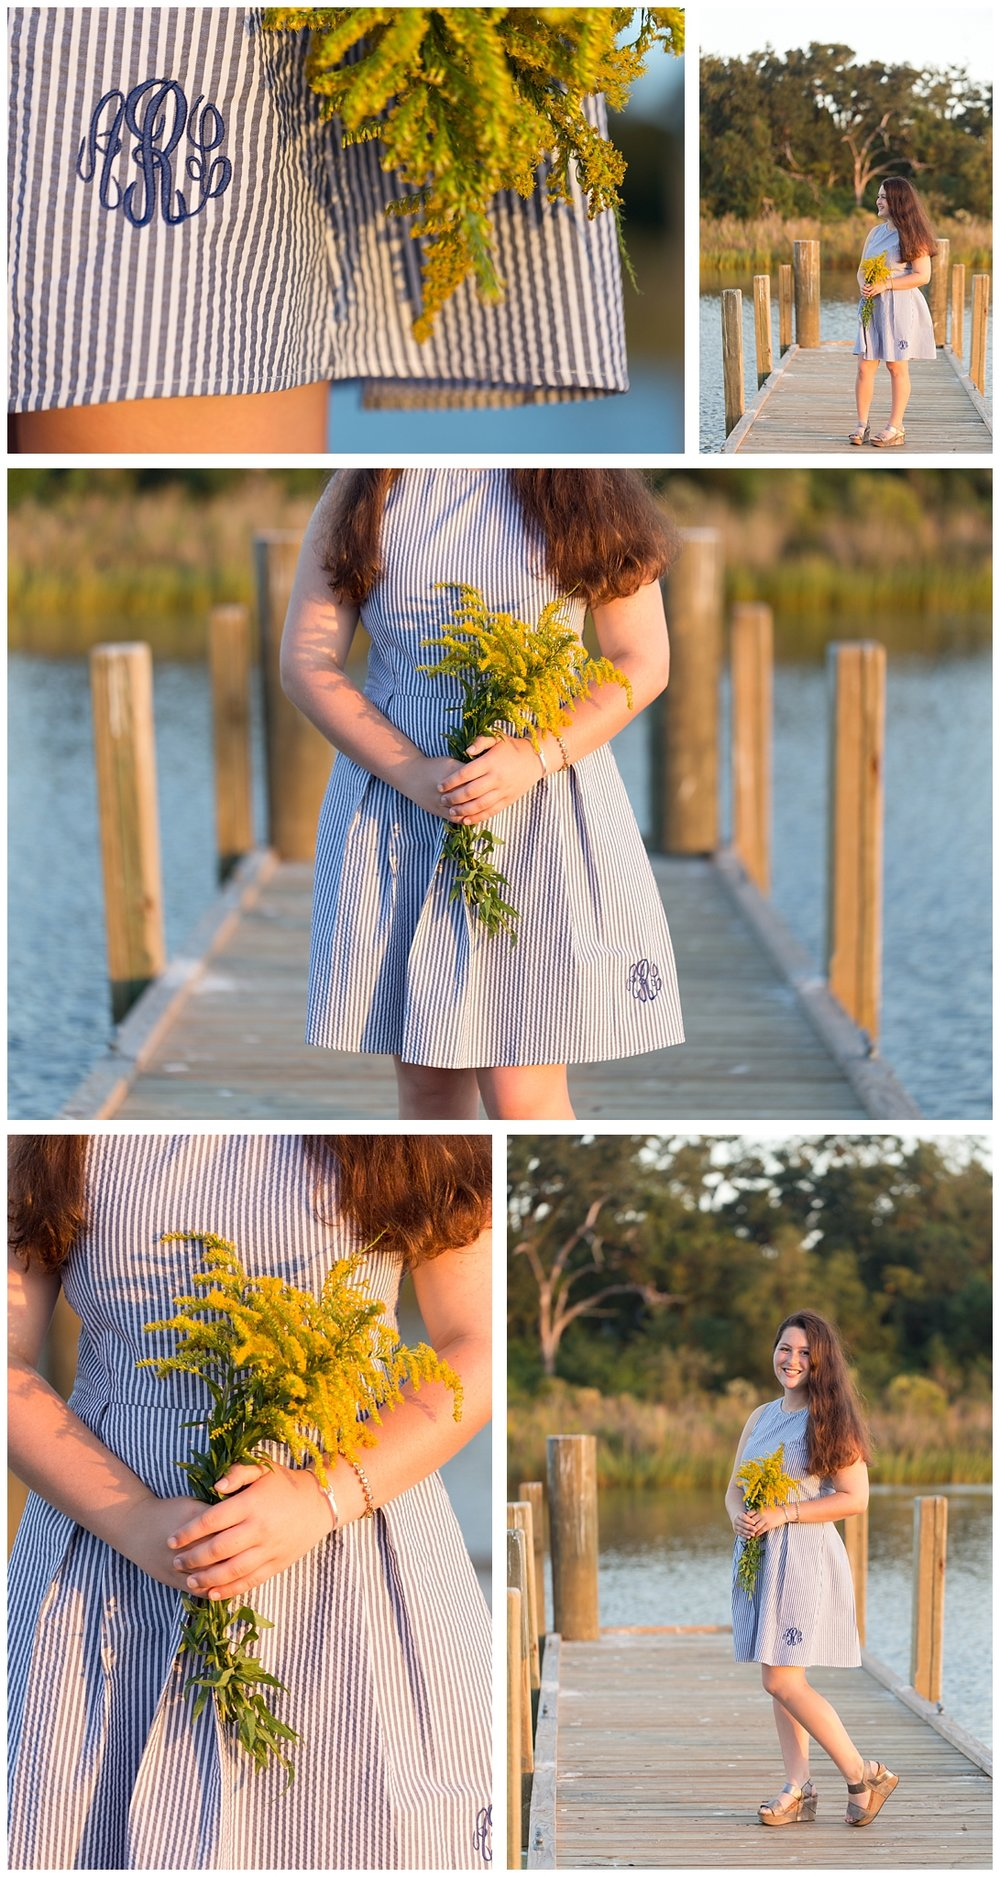 coastal senior portrait session with goldenrod on dock, monogrammed dress